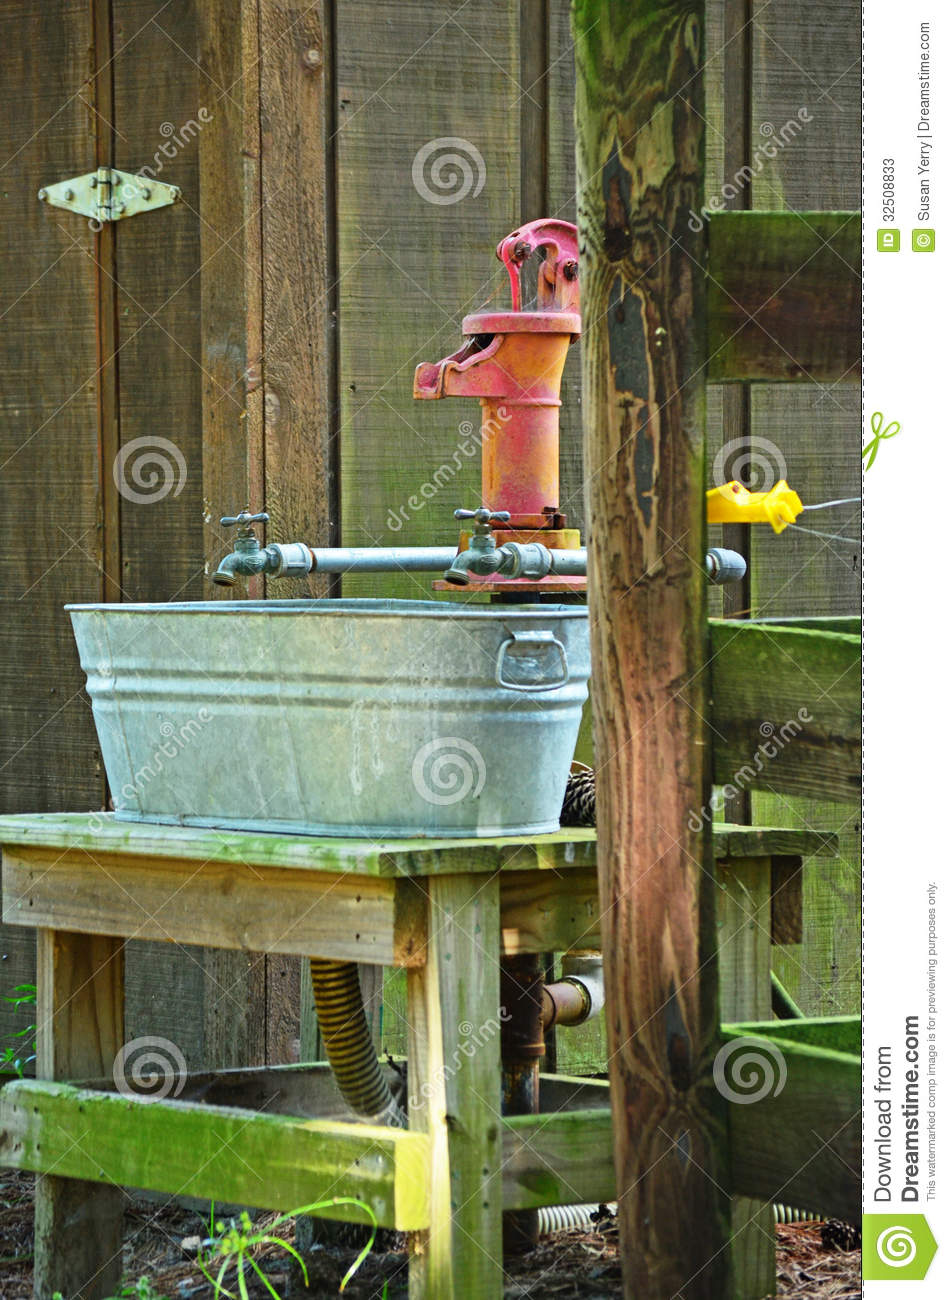 Antique Hand Water Pump Water Spigot Wash Pale Stock Image - Image ...